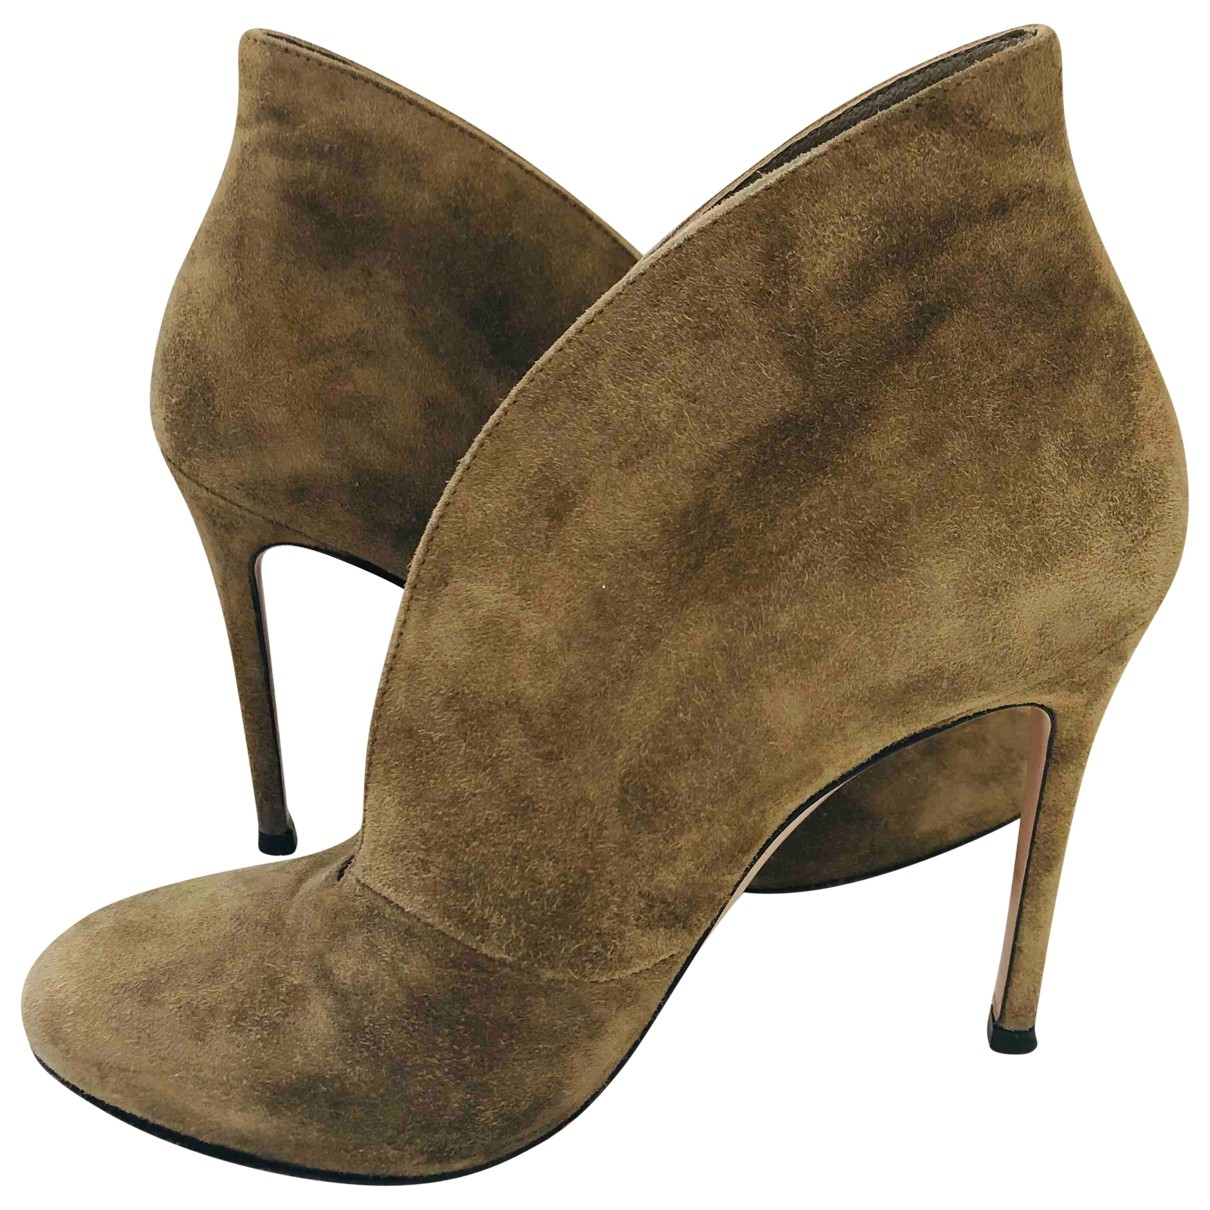 Gianvito Rossi \N Khaki Suede Ankle boots for Women 36 EU